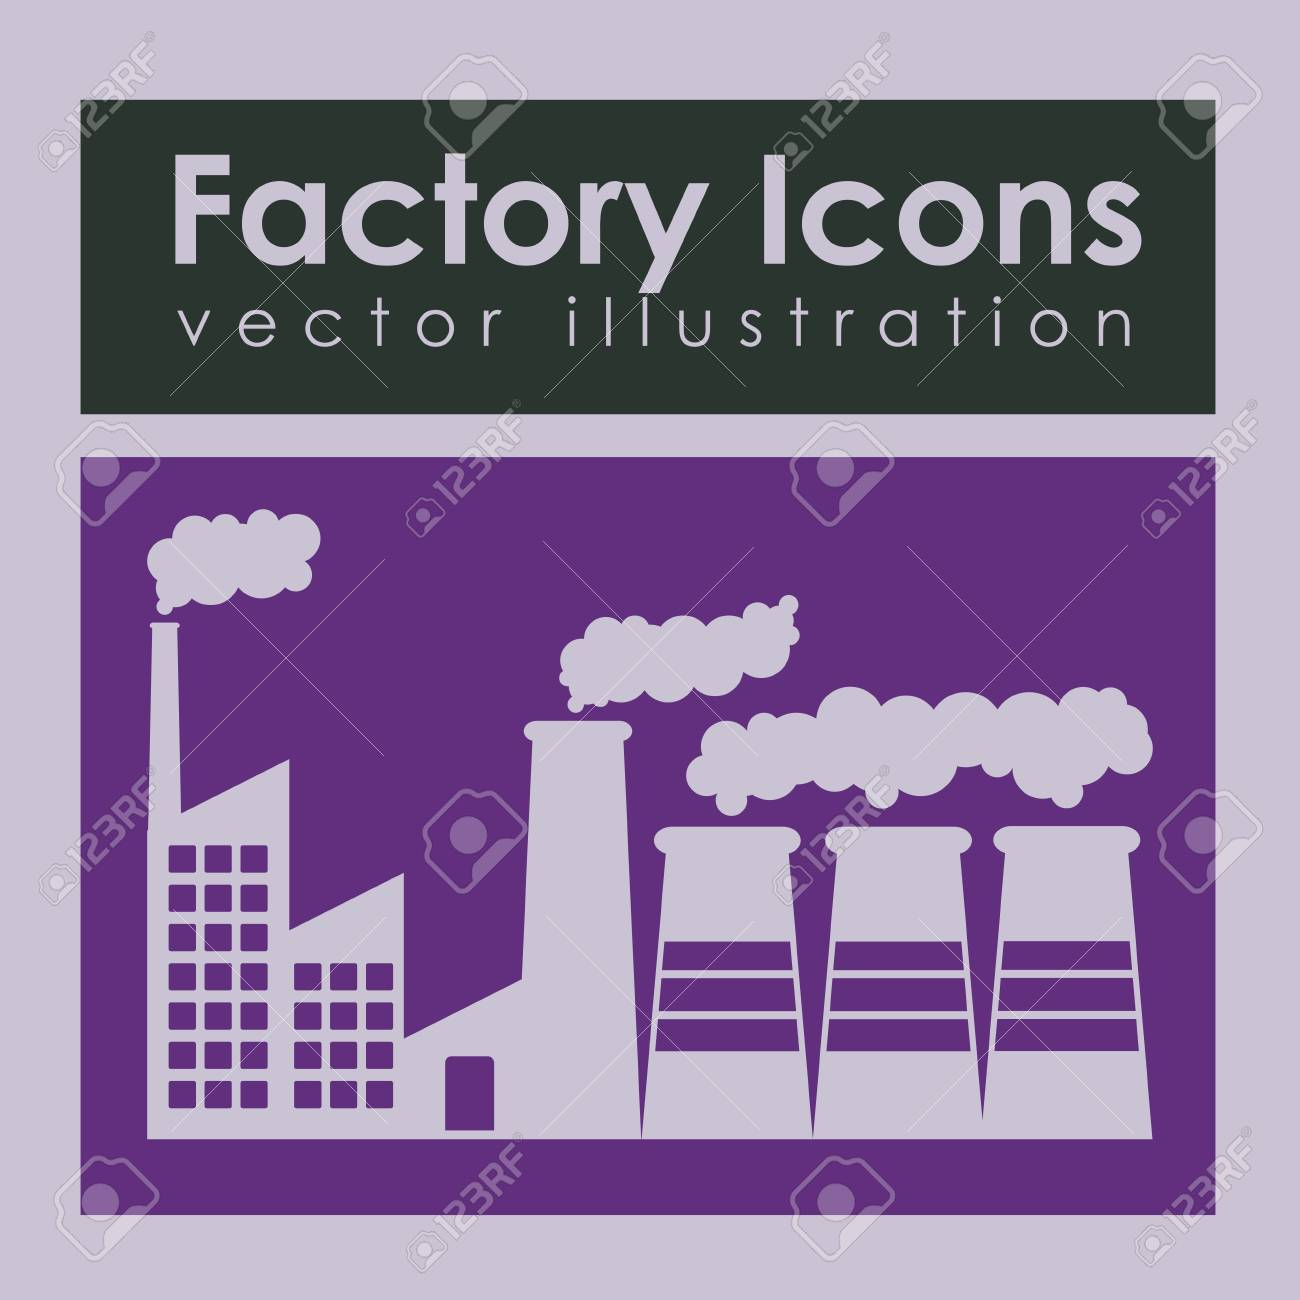 factory icons over purple background vector illustration Stock Vector - 21295758